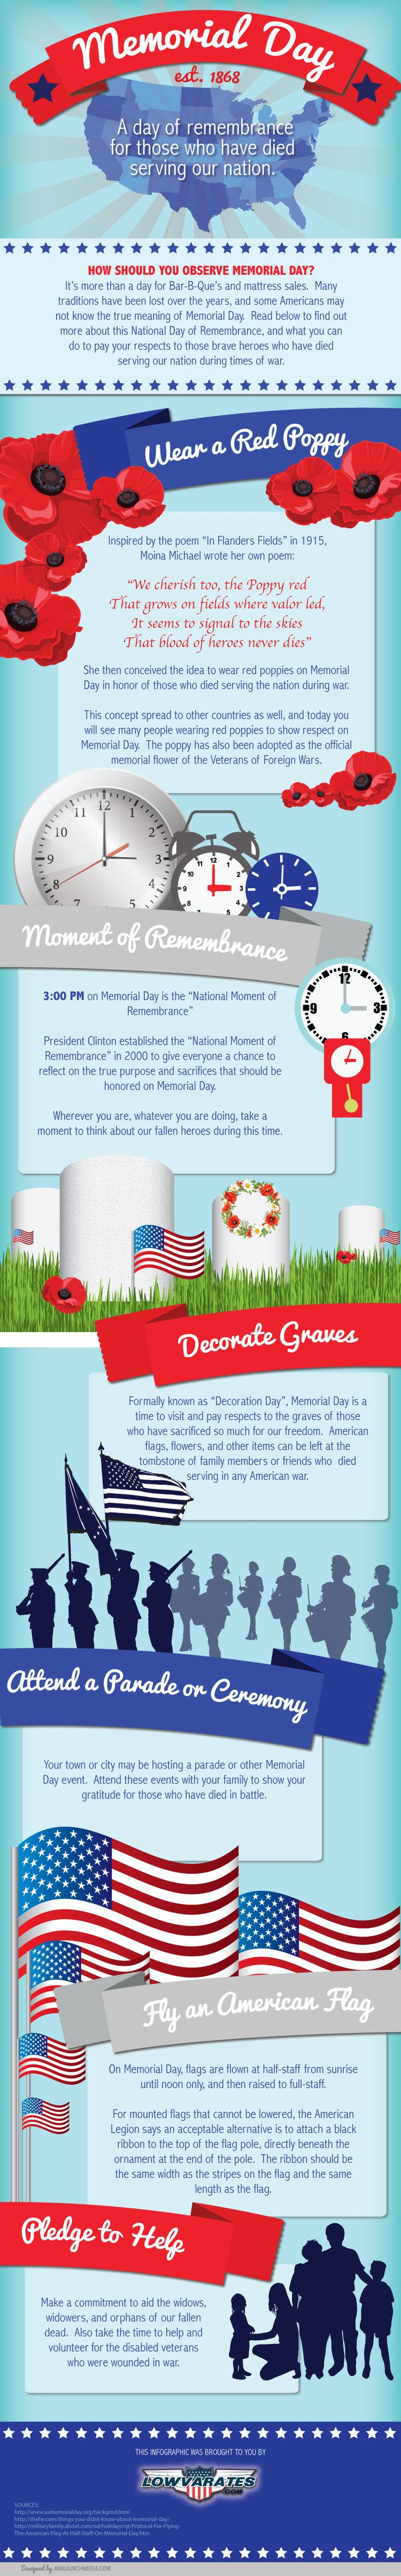 26 Inspirational Memorial Day Messages